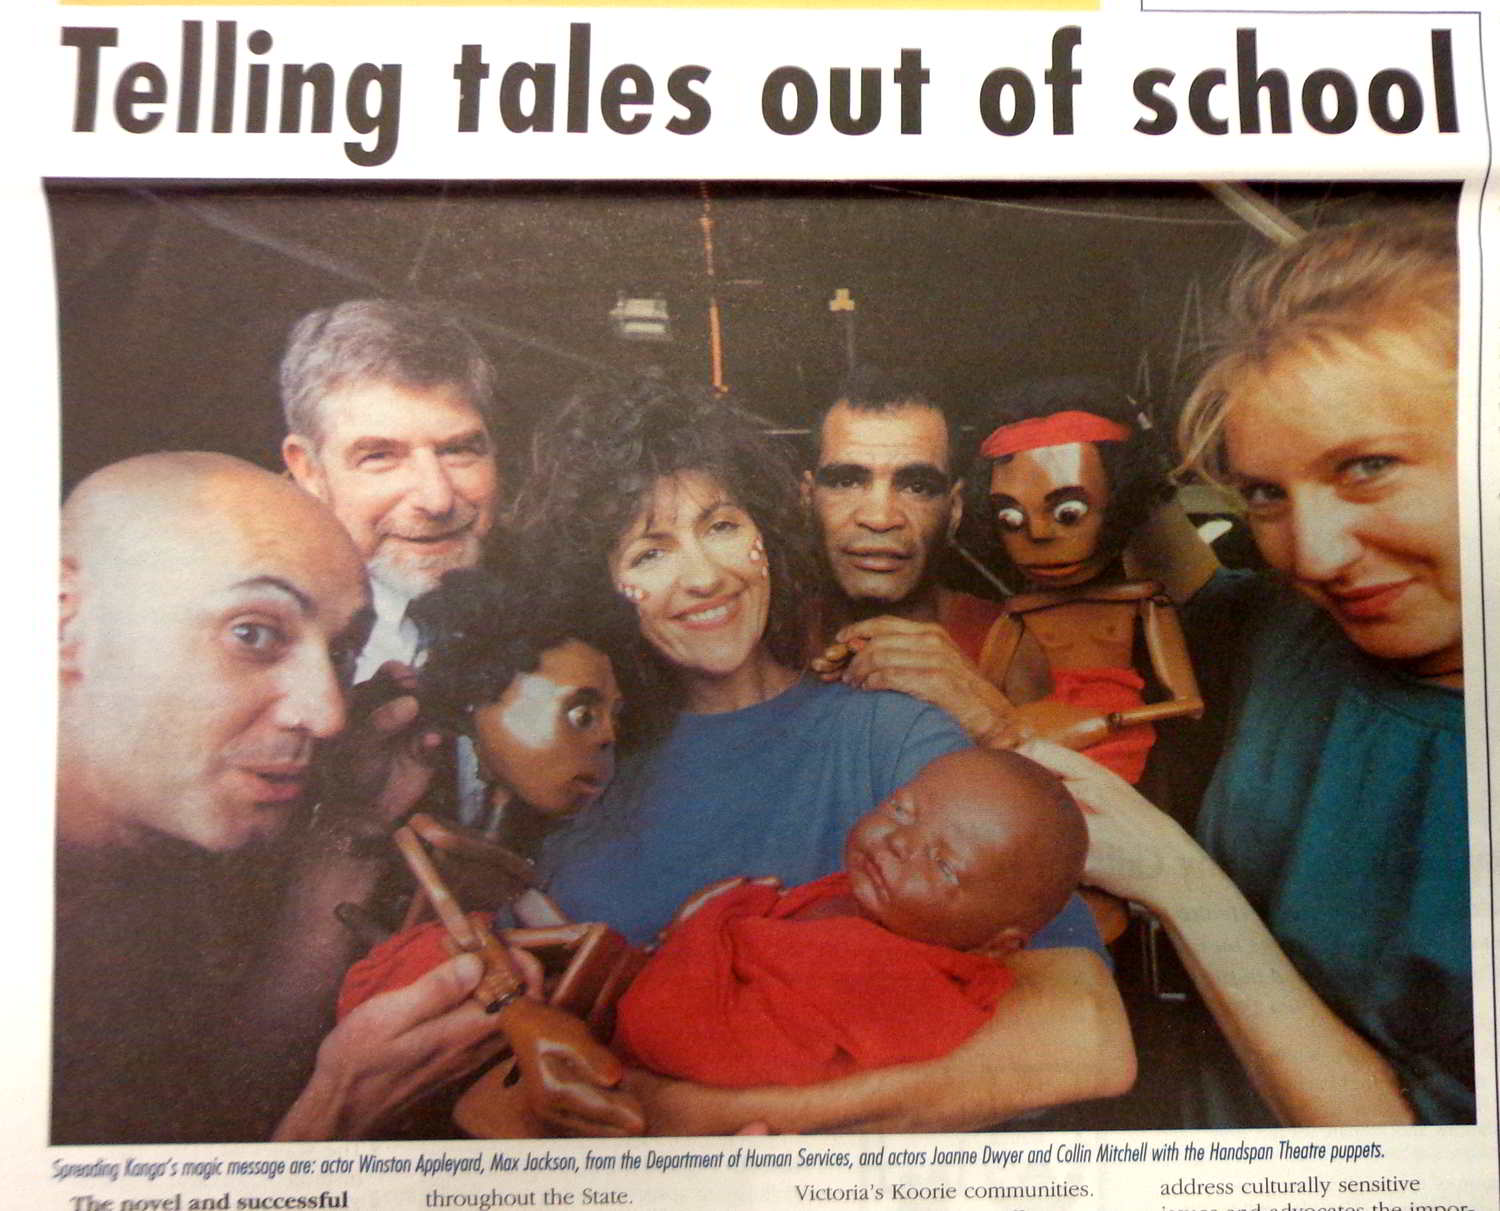 newspaper clipping photo showing mixed indigenous and anglo-australian cast and puppets